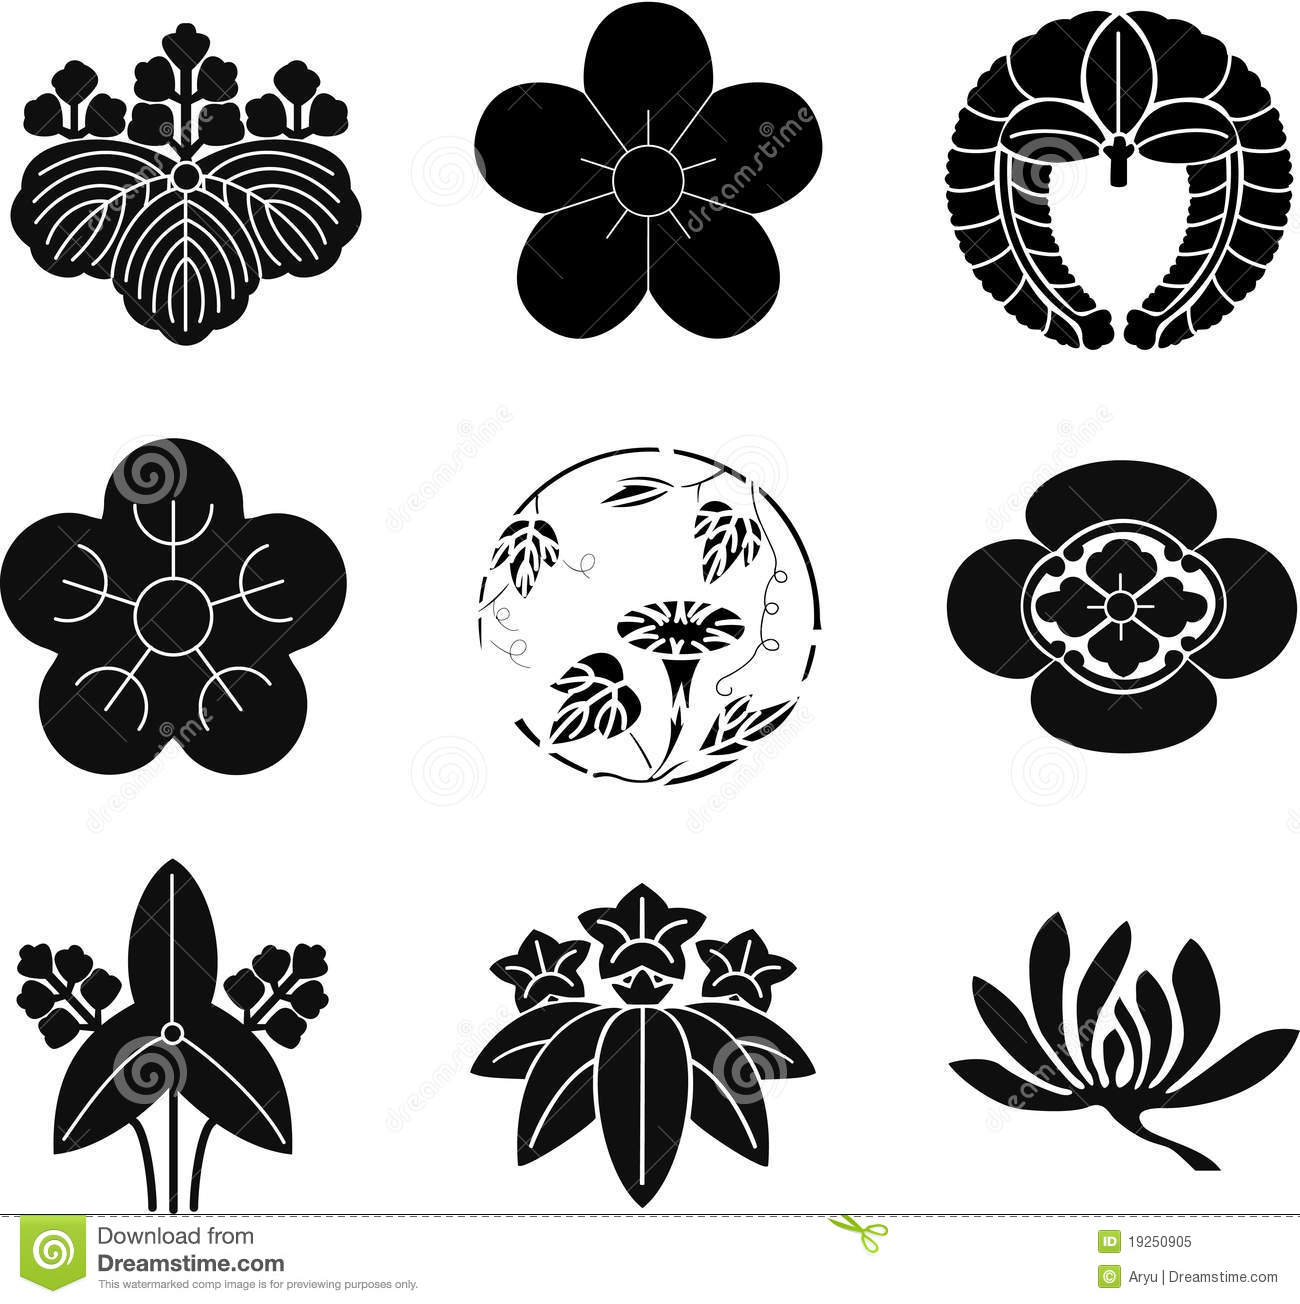 japanese family crests vector illustration cartoondealer hawk clipart feathers hawk clipart abstract